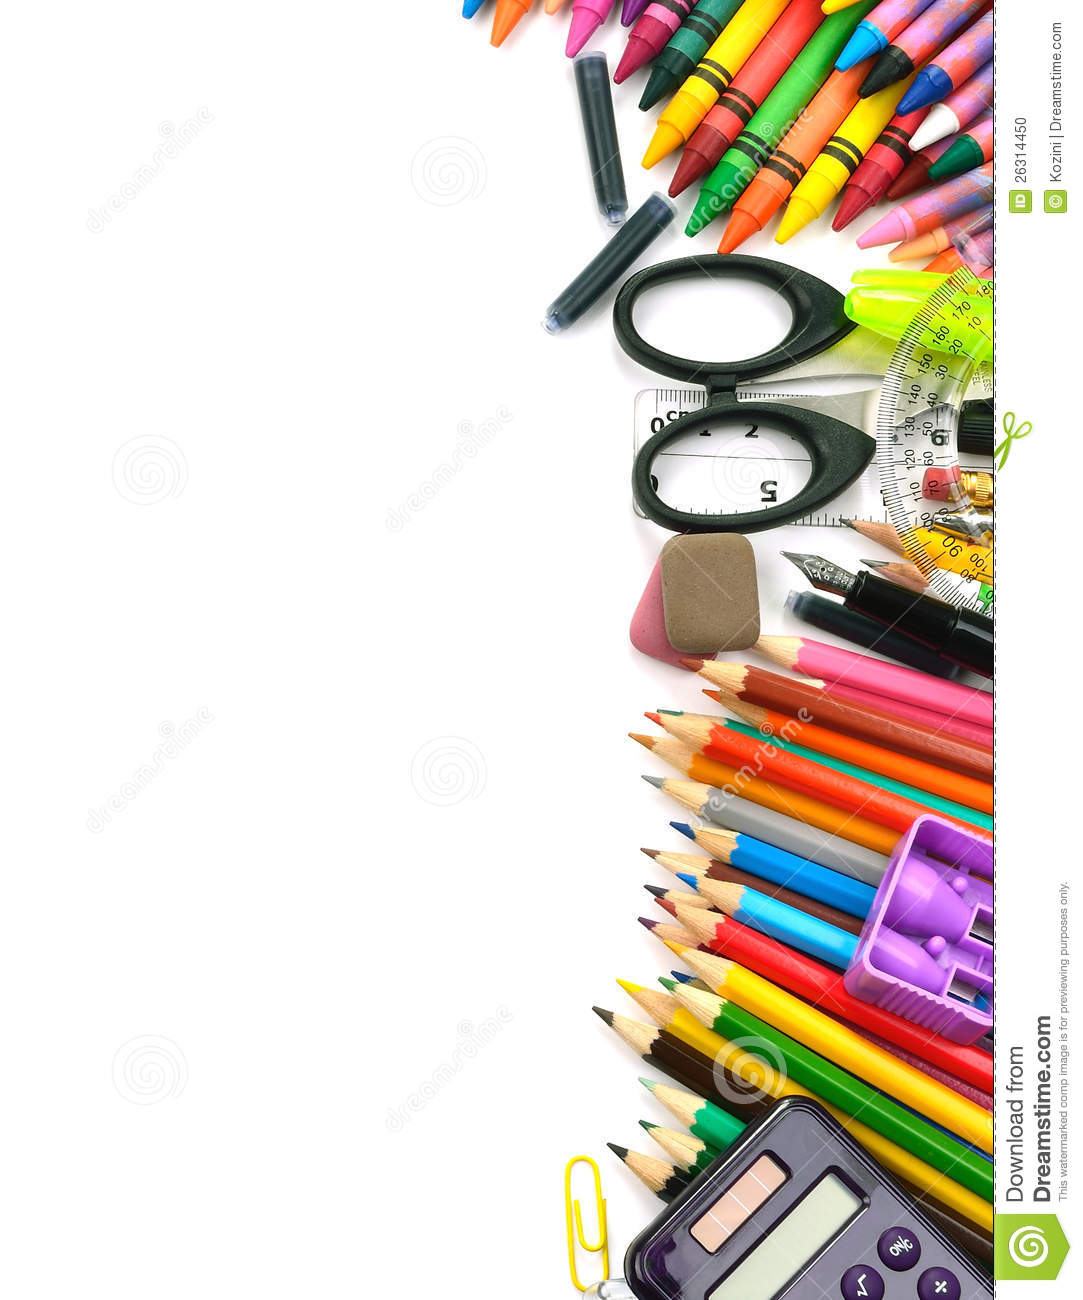 school and office supplies frame stock photo image 26314450